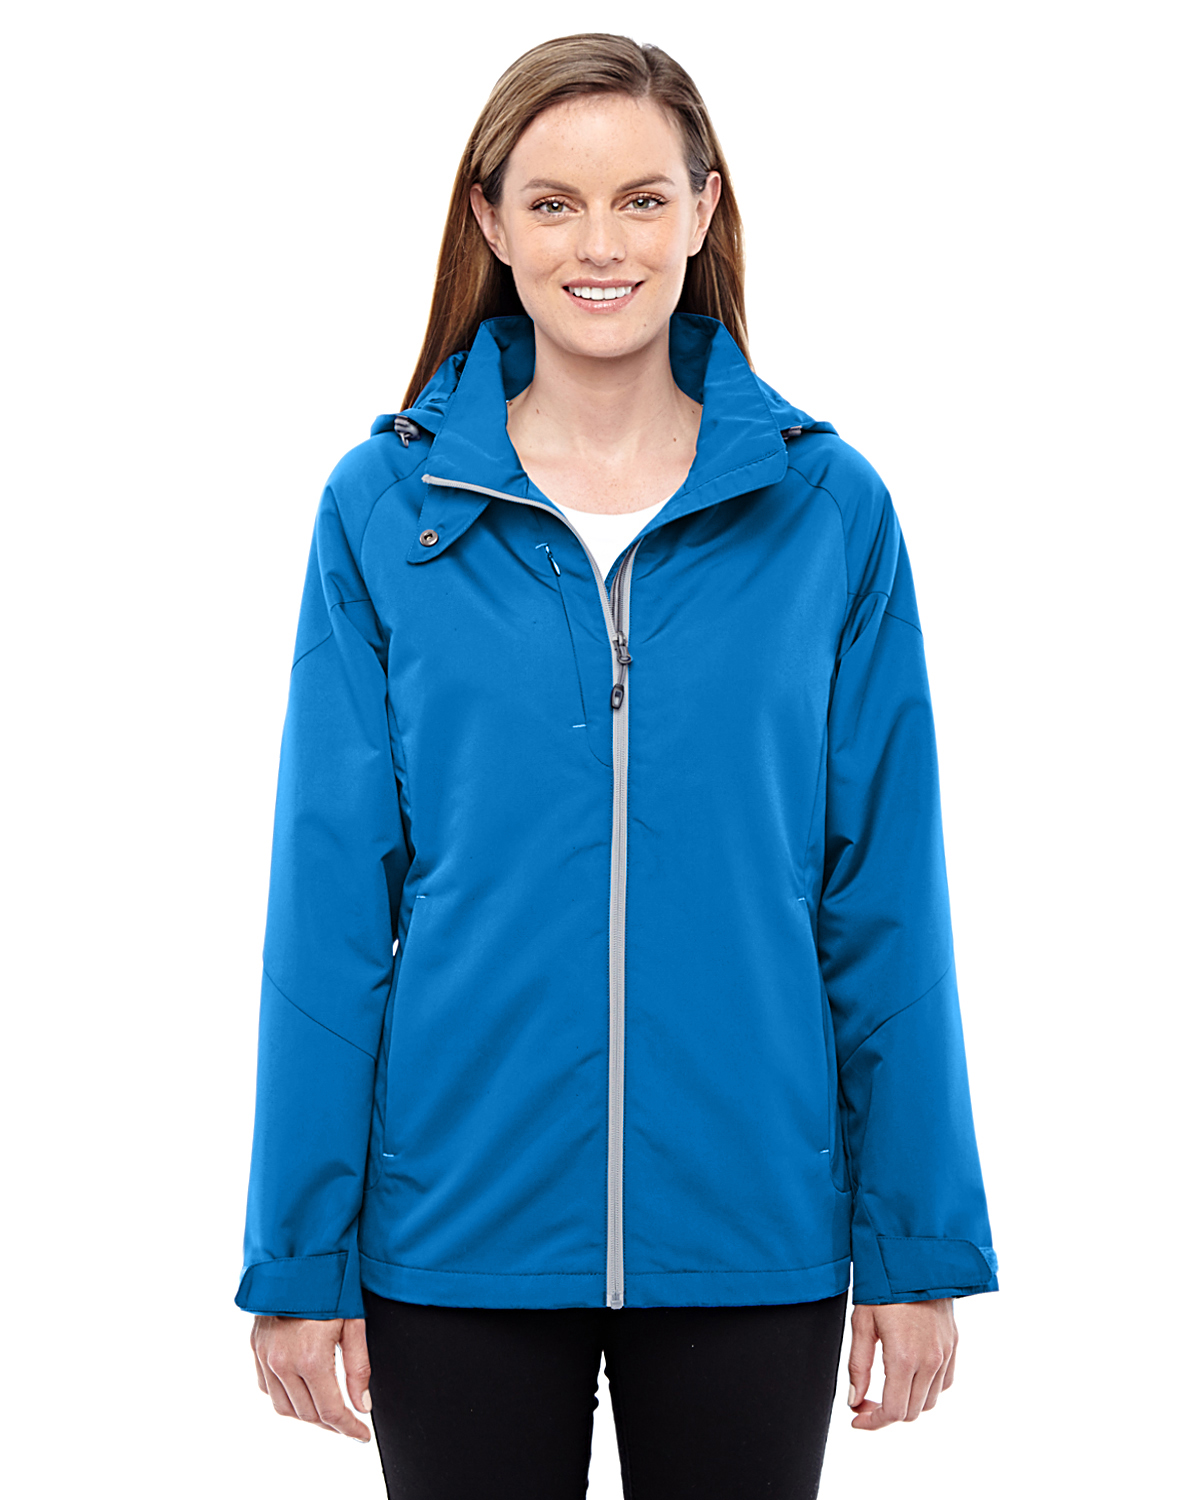 Ash City - North End 78226 - Ladies' Insight Interactive Shell Jacket